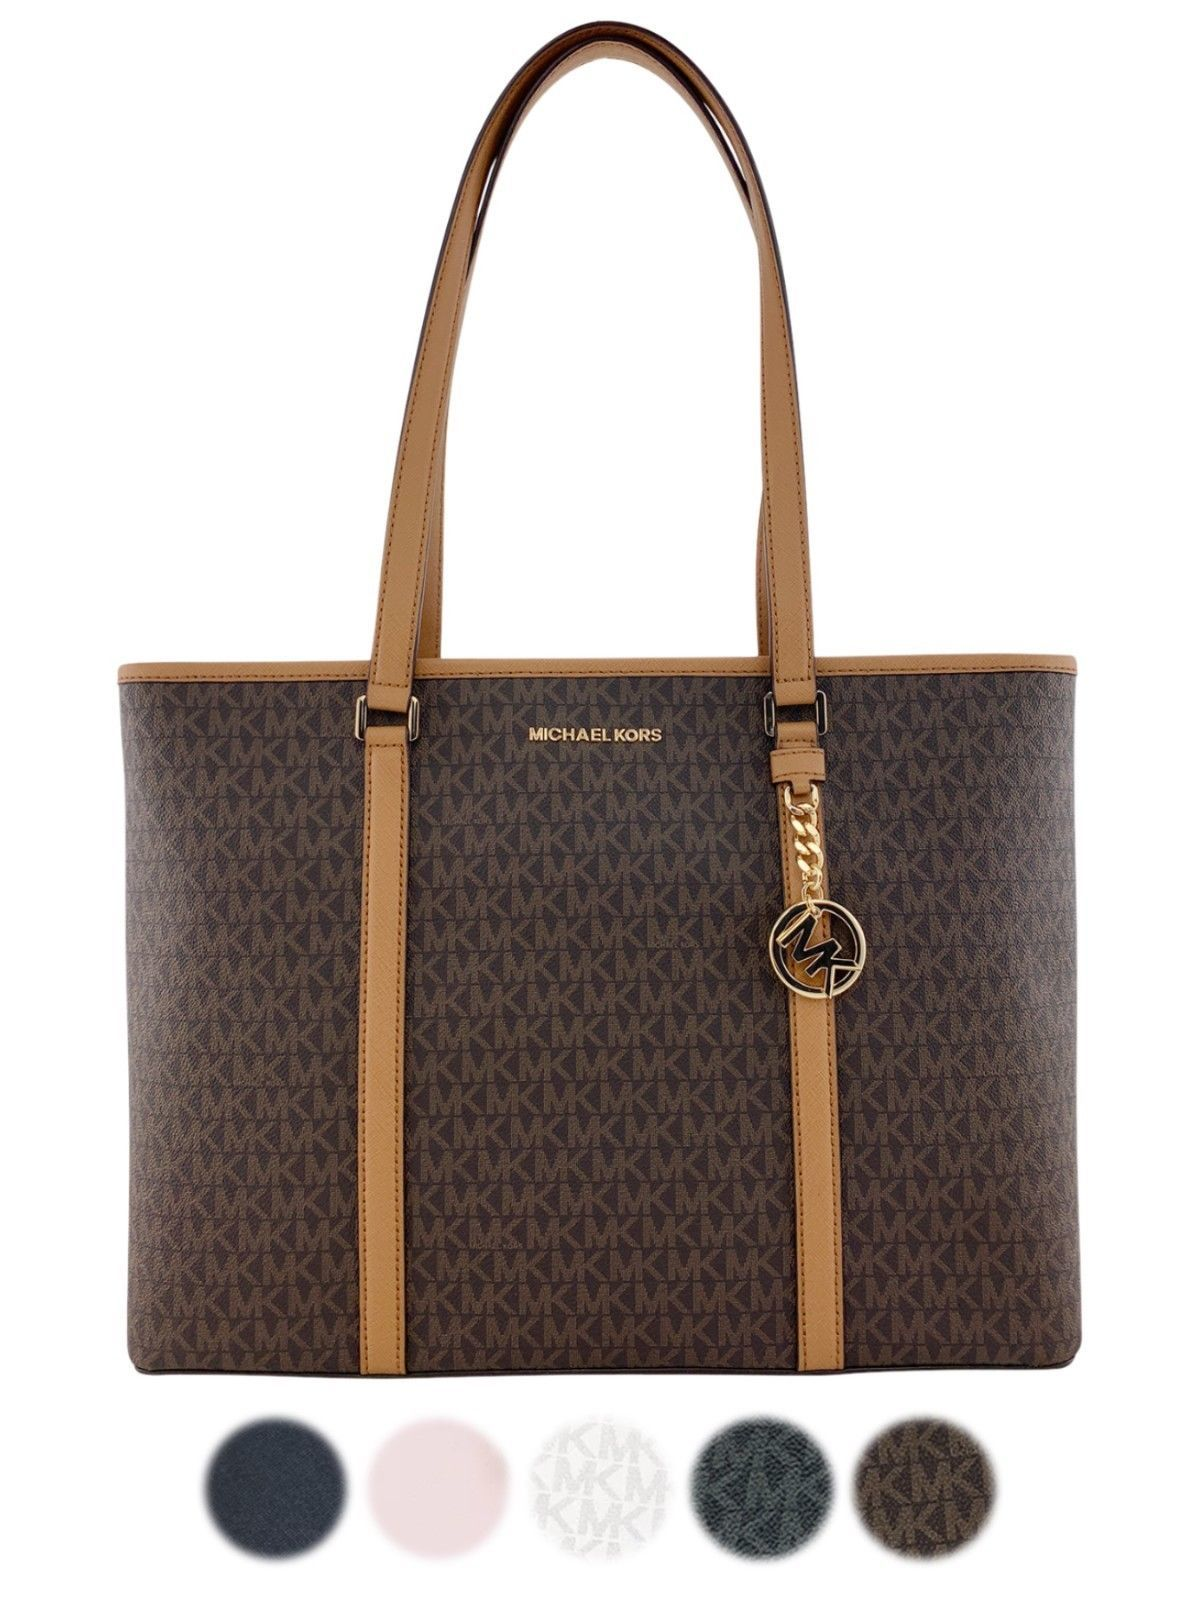 Primary image for Michael Kors Sady Large Multifunctional Top Zip Tote Laptop Bag